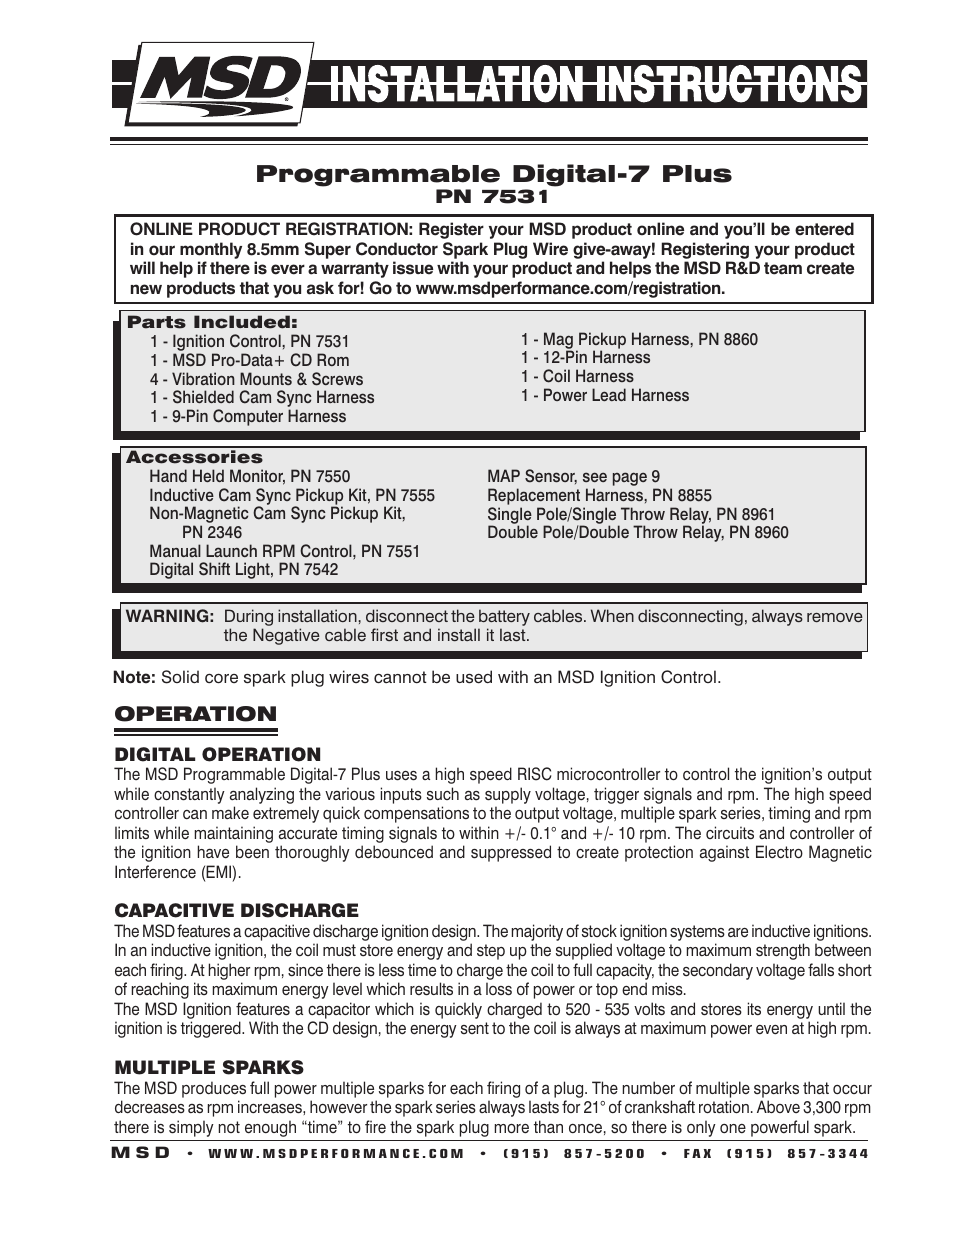 msd 7531 programmable digital 7 plus installation page1 msd 7531 programmable digital 7 plus installation user manual 20 msd digital 7 wiring diagram at bayanpartner.co